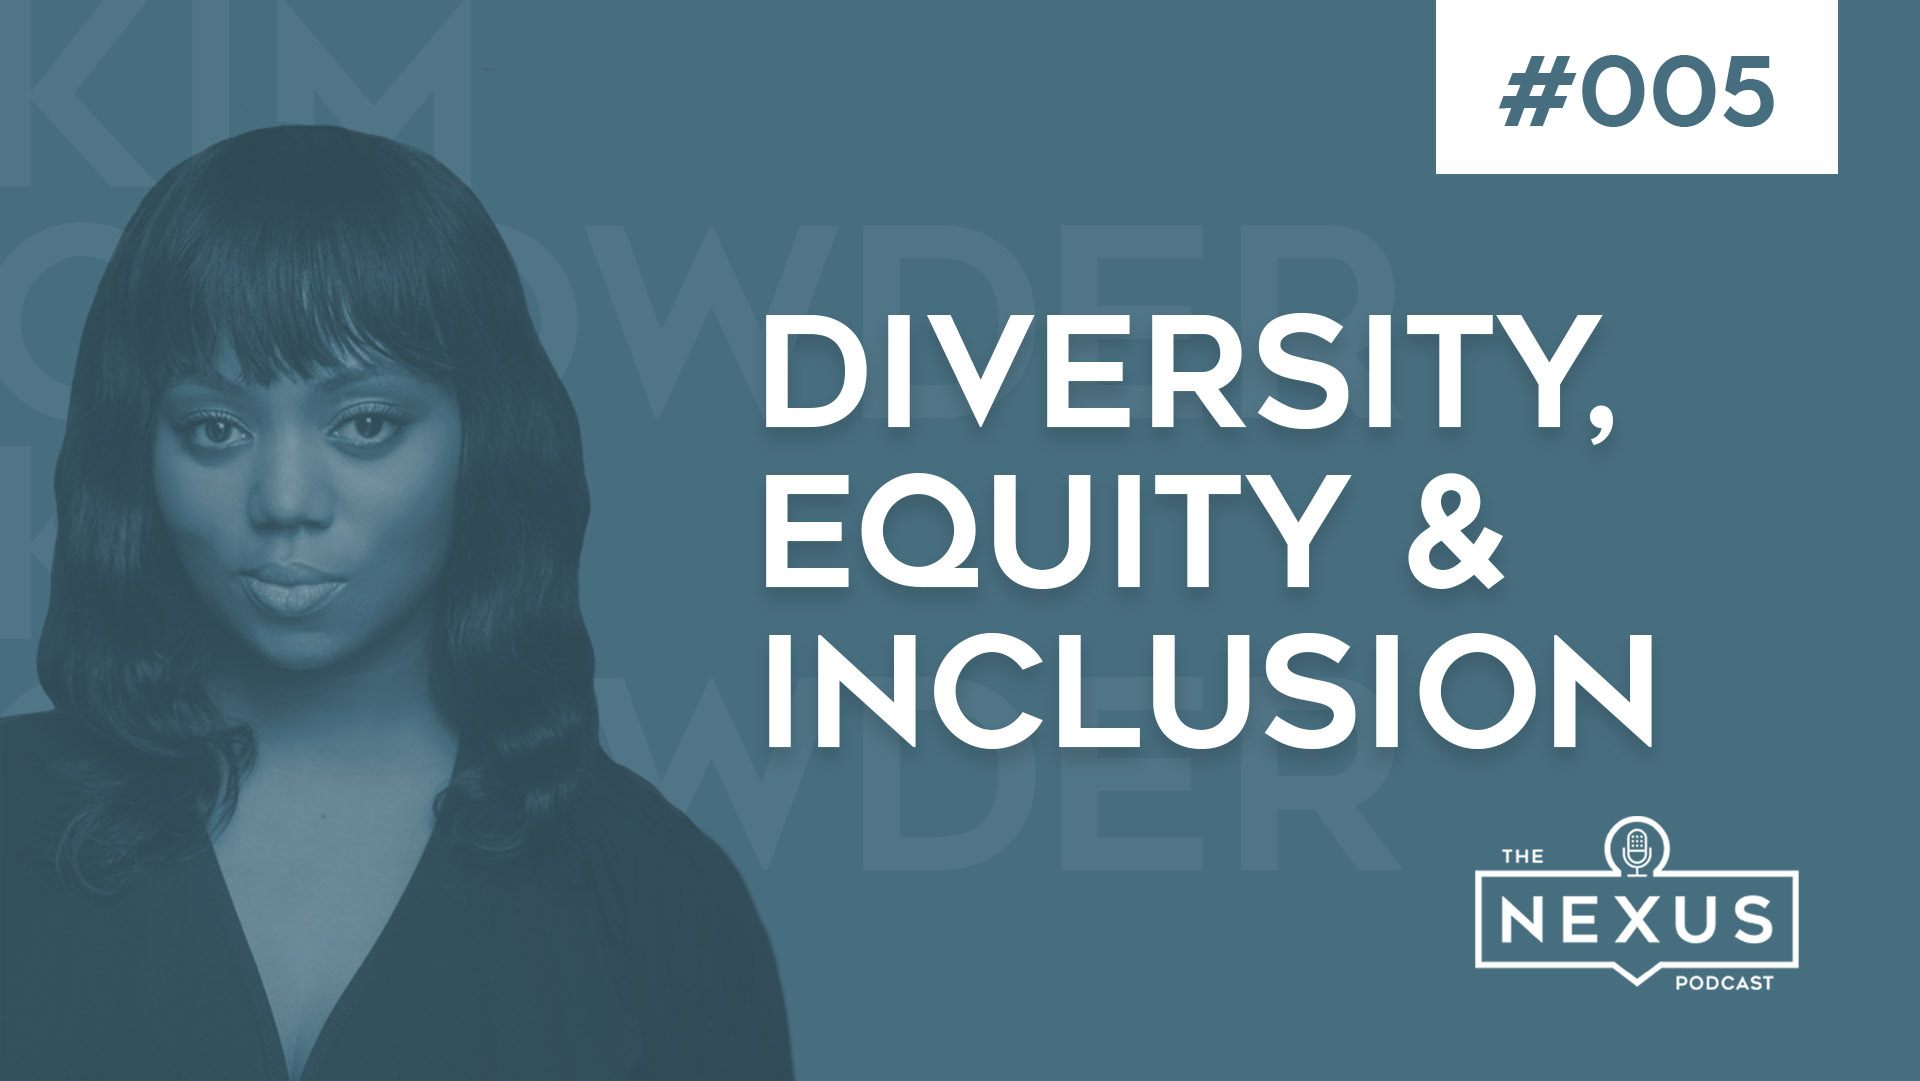 Diversity, Equity & Inclusion with Kim Crowder